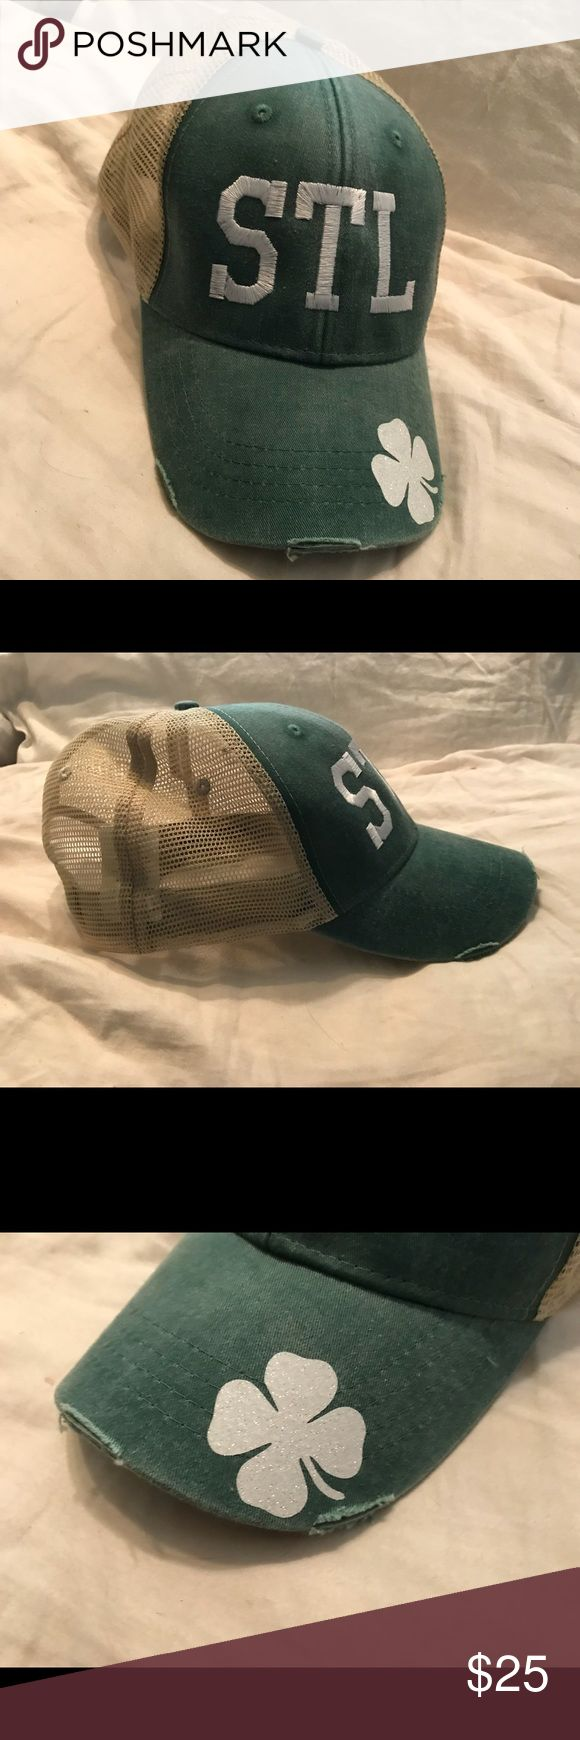 STL hat New, never used. I custom ordered this hat and it doesn't look right on me. Green with off white back, hat has a distressed look to it. STL is embroidered on the front in white, shamrock is white and sparkly. Back is adjustable. Price firm. Perfect Christmas gift for your St. Louis friend! Accessories Hats